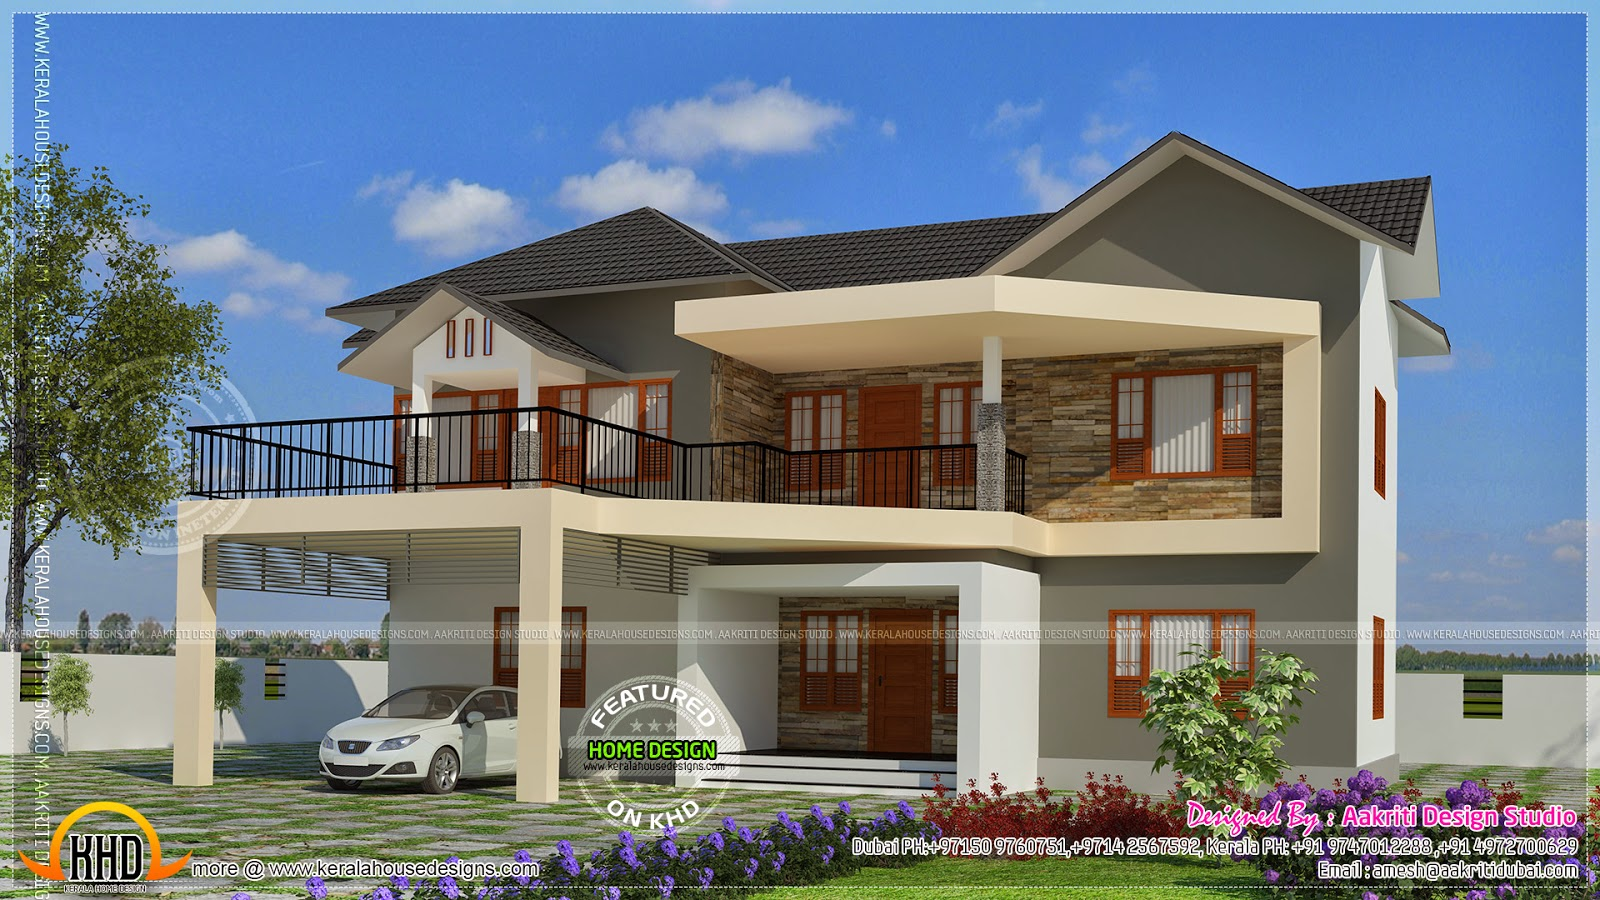 Elegant villa exterior kerala home design and floor plans for Elegant home designs